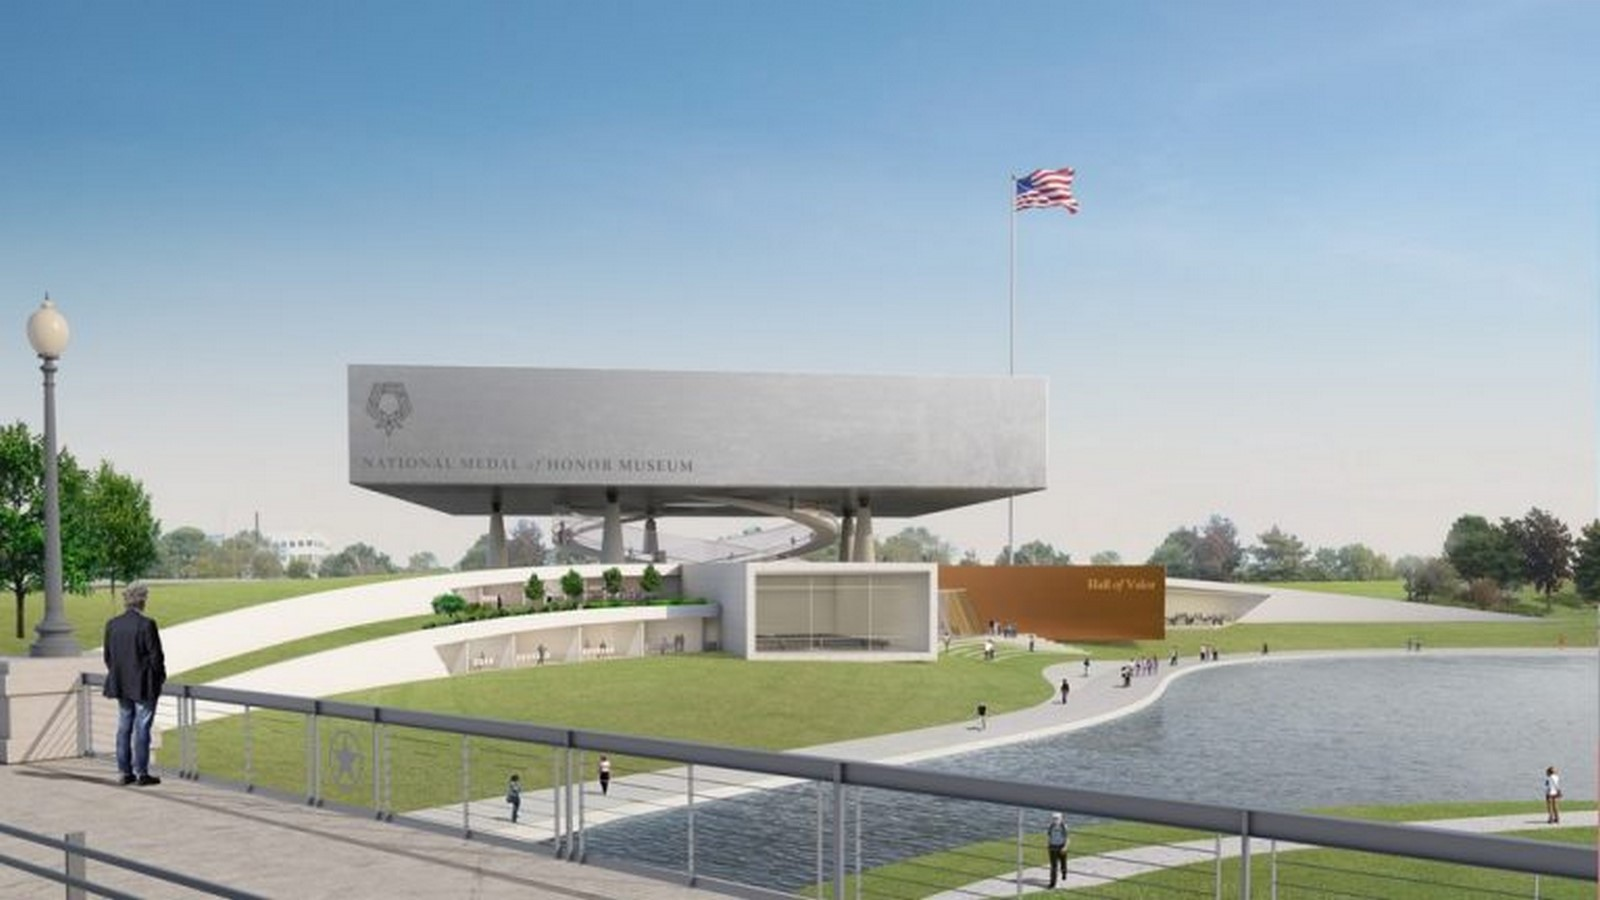 National Medal of Honor Museum in Arlington designs revealed by Rafael Viñoly Architects - Sheet2